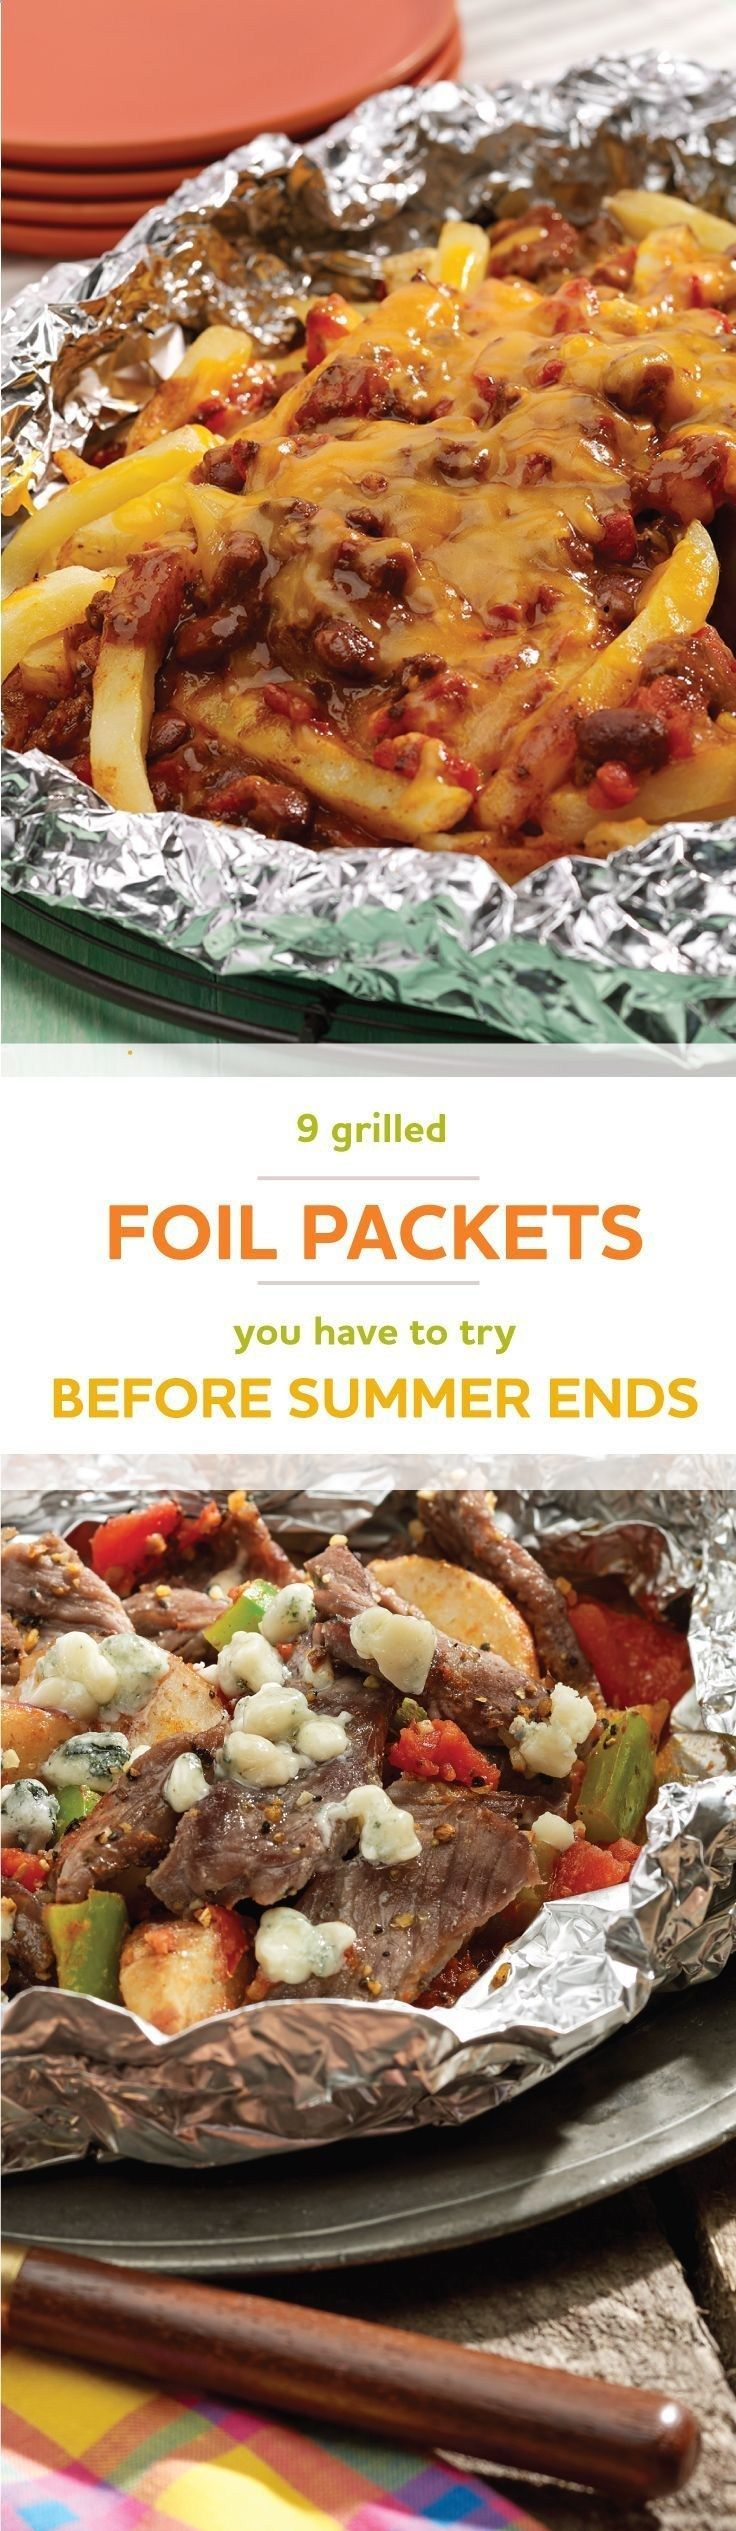 Check out these 9 grilled foil packets you have to try before summer ends! whole30 grilling recipes;grilling recipes dinner;grilling dishes;grilling recipes healthy;grilling recipes veggies;recipes for grilling;grilling tip;grilling healthy;grilling recipes easy;grilling onions;grilling recipes chicken;grilling recipes meat;grilling recipes sides;healthy grilling recipes;meat grilling recipes;healthy grilling;grilling chicken breastrecipes;grilling sides recipes;grilling recipes fall;g... #chick #chickenbreastrecipeseasy